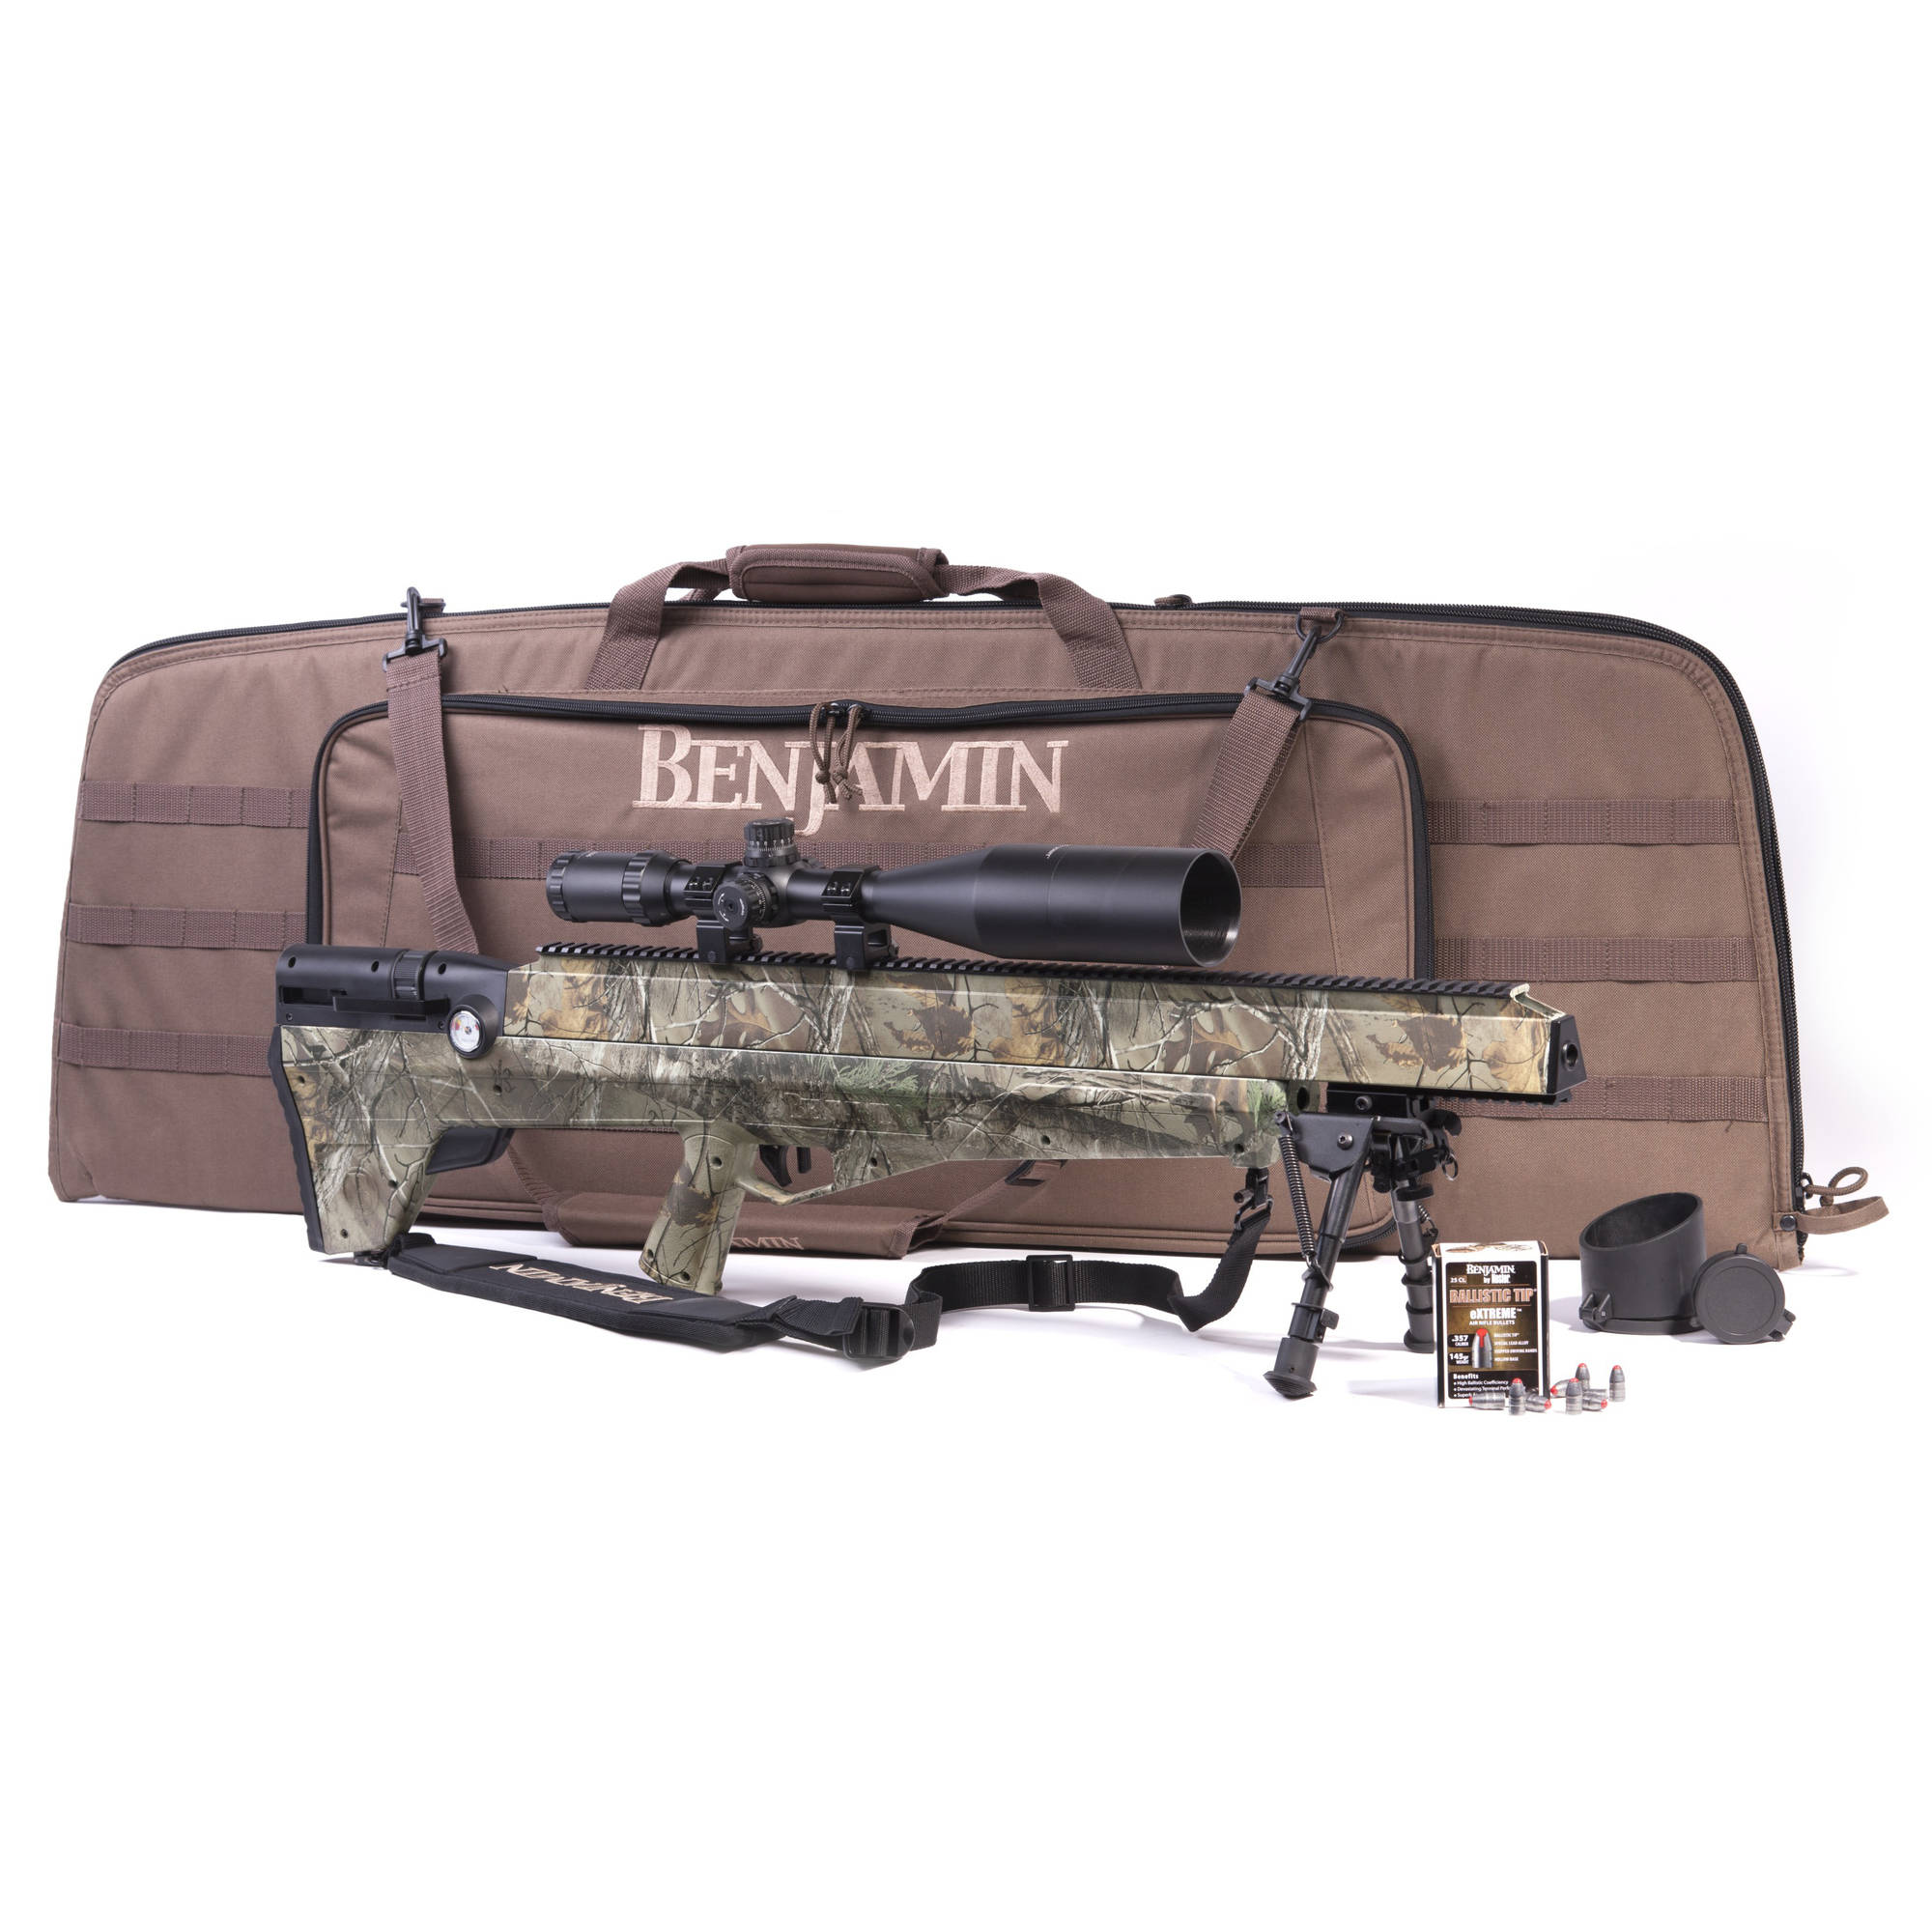 Benjamin Bulldog .357 Caliber PCP Air Rifle, Realtree Camo Sportsman's Package